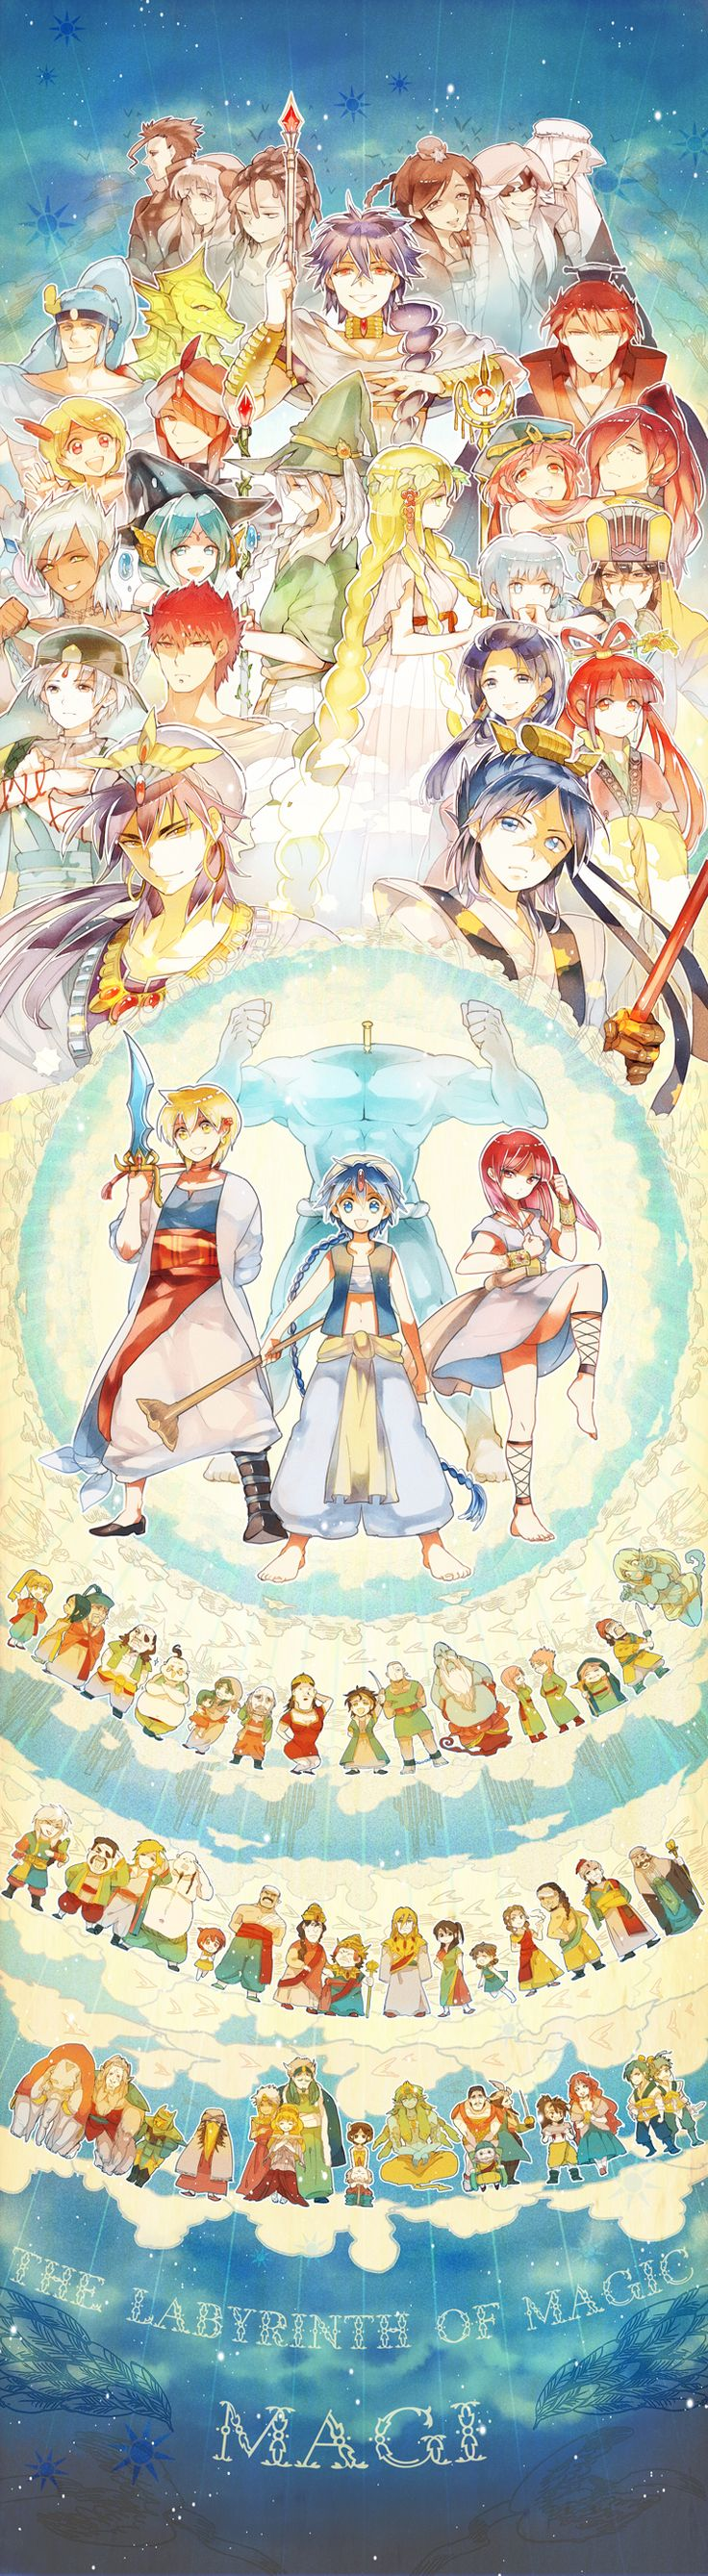 Magi: The Labyrinth of Magic... Wow this is really amazing, to not only incorporate all the major characters, but also so many of the lesser ones is really amazing.